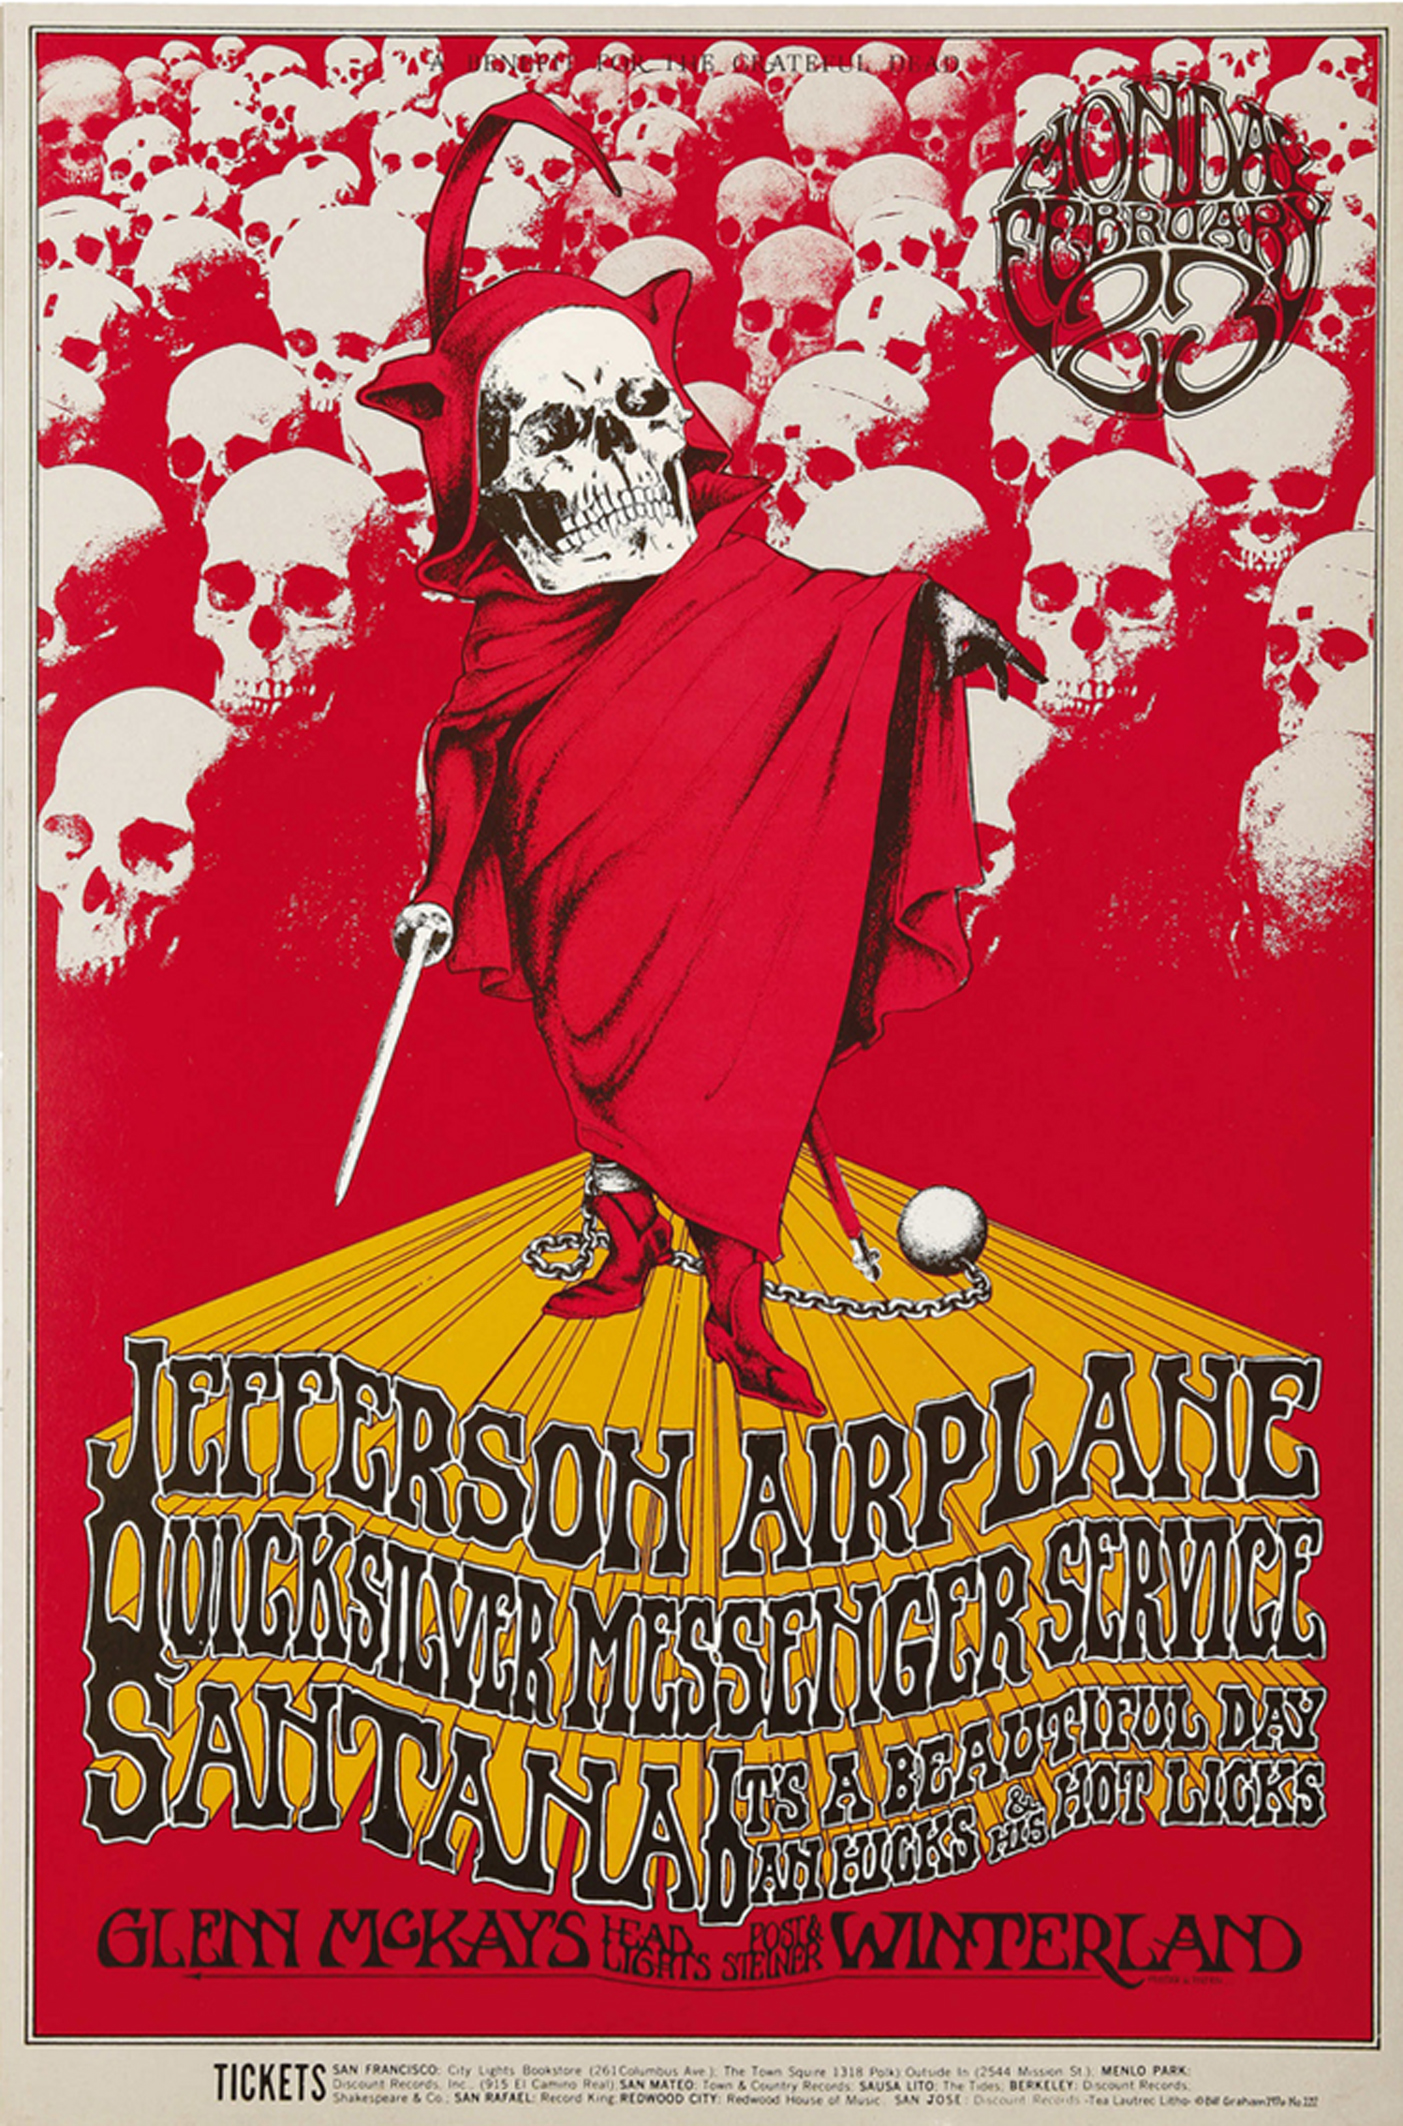 Jefferson Airplane 1970